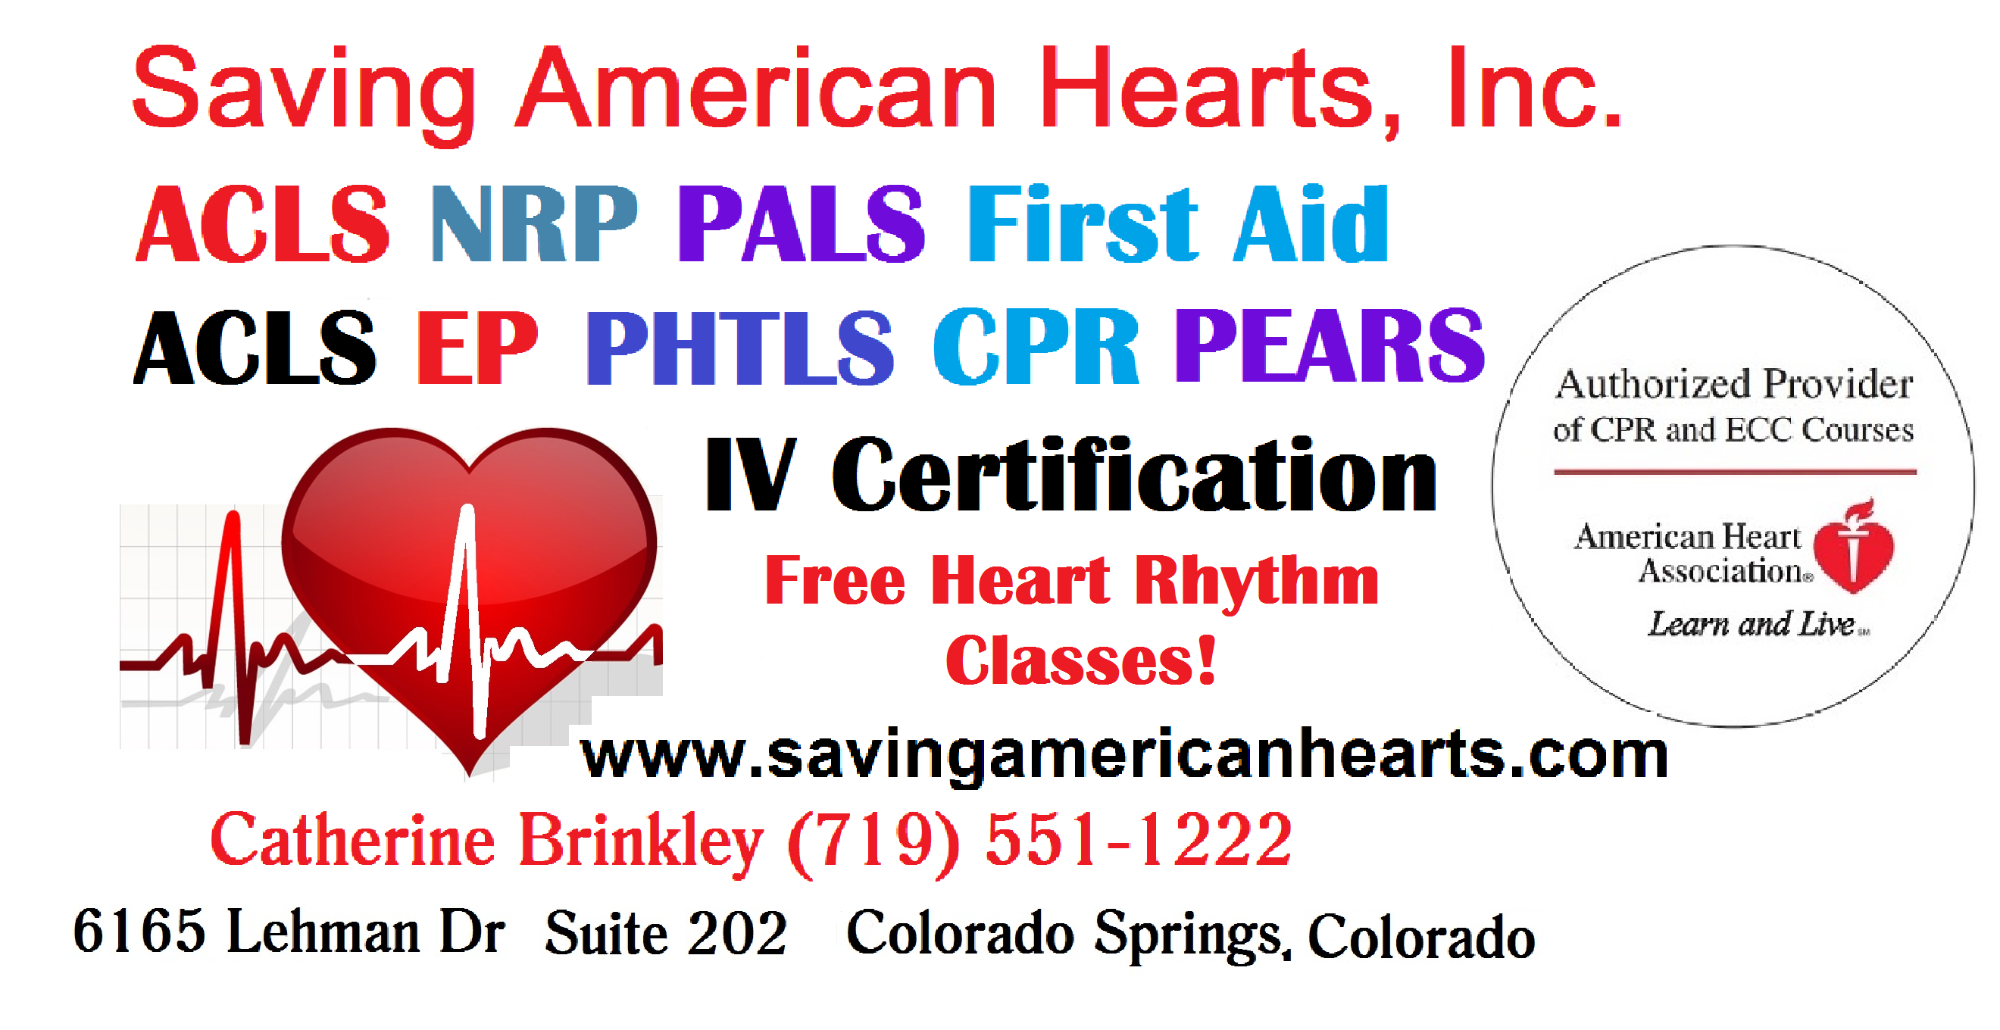 Practice While Watching Saving American Hearts Inc Aha Acls Bls